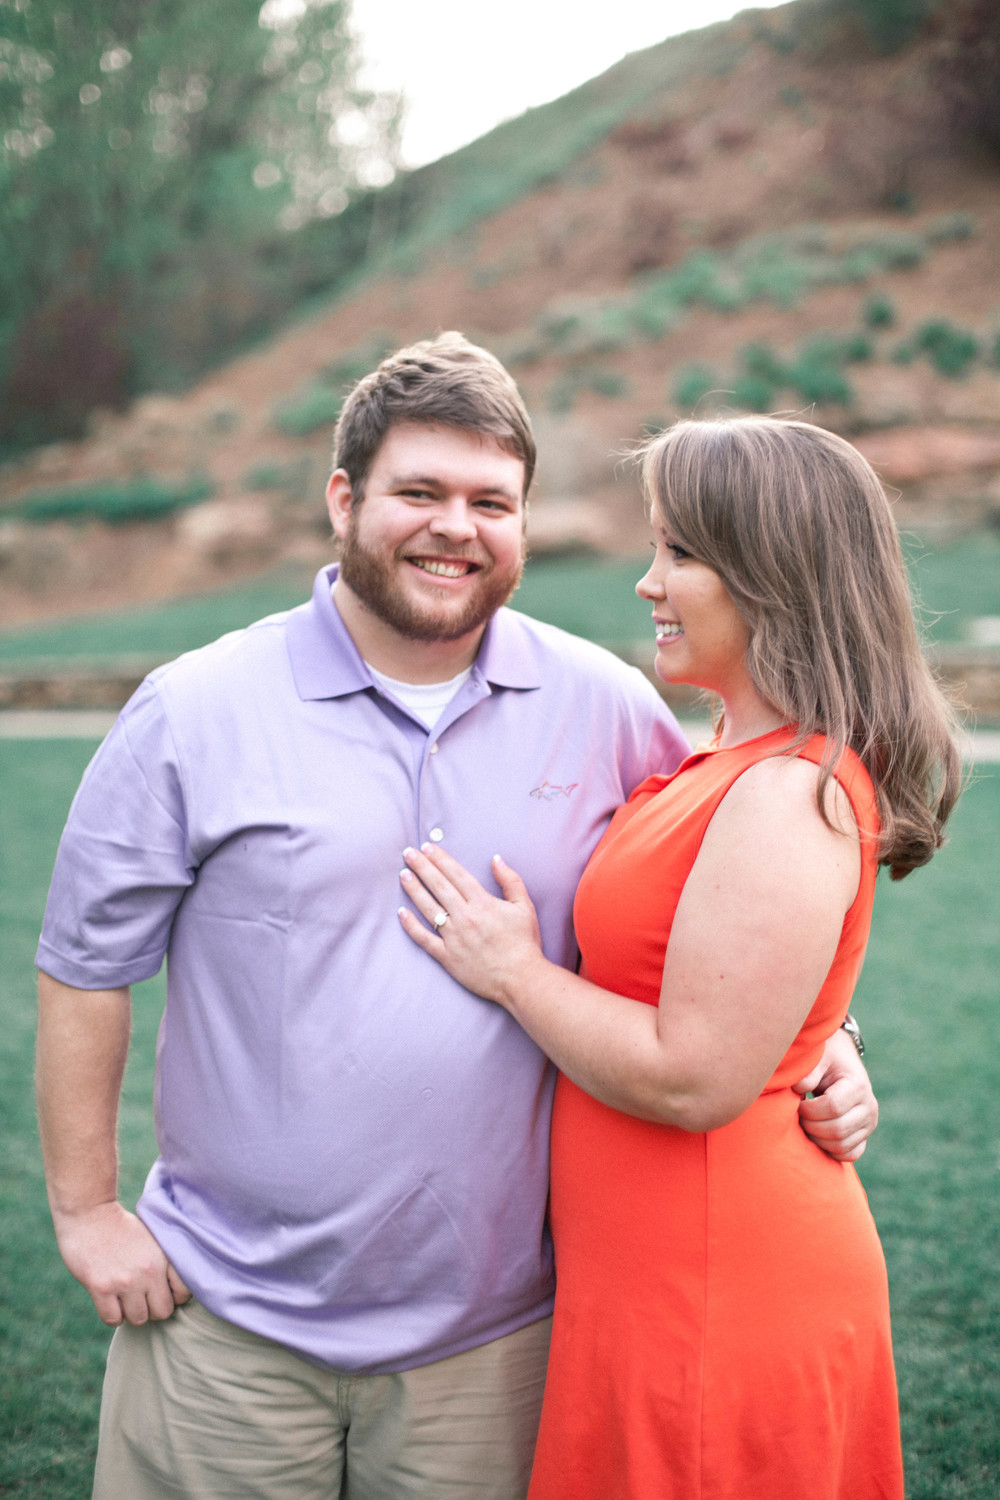 zach_gabbie_engagement_poured_out_photography-44.jpg